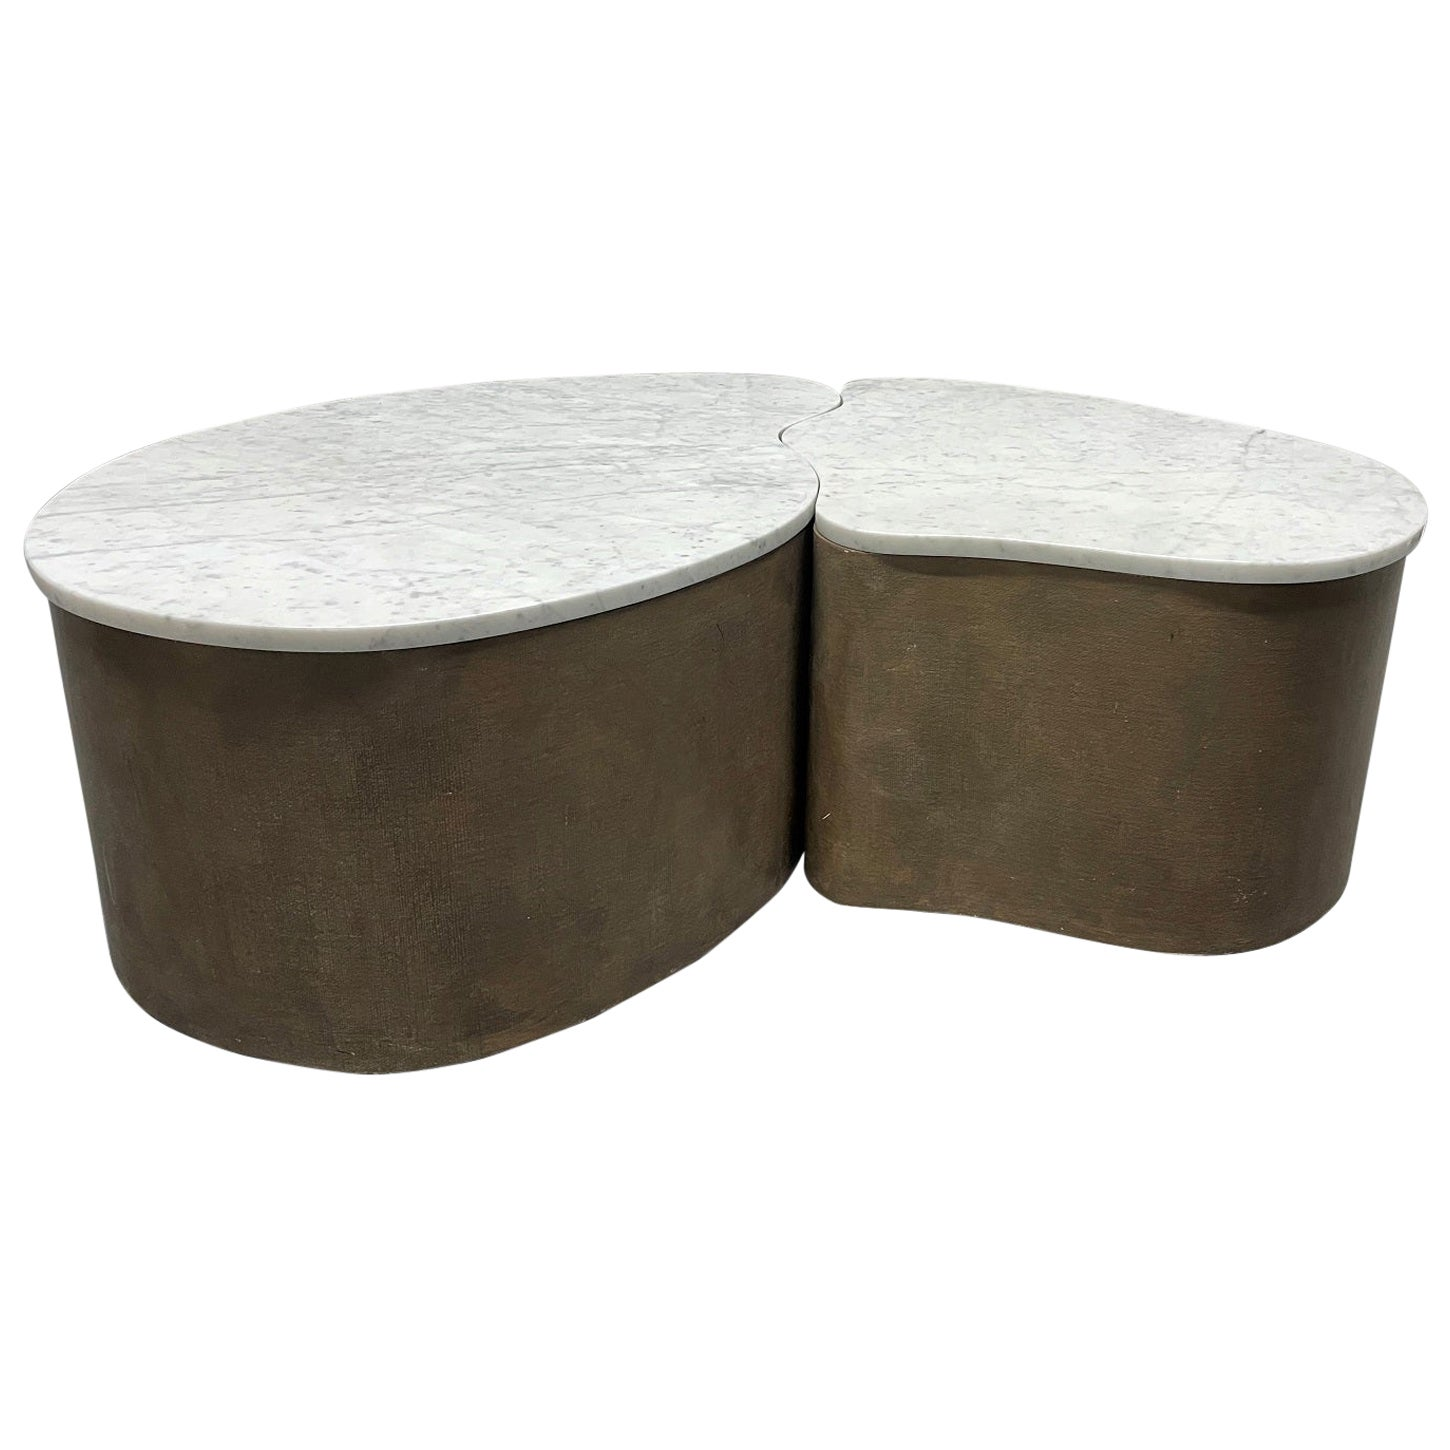 Biomorphic Grasscloth and Carrara Marble-Top Coffee Table